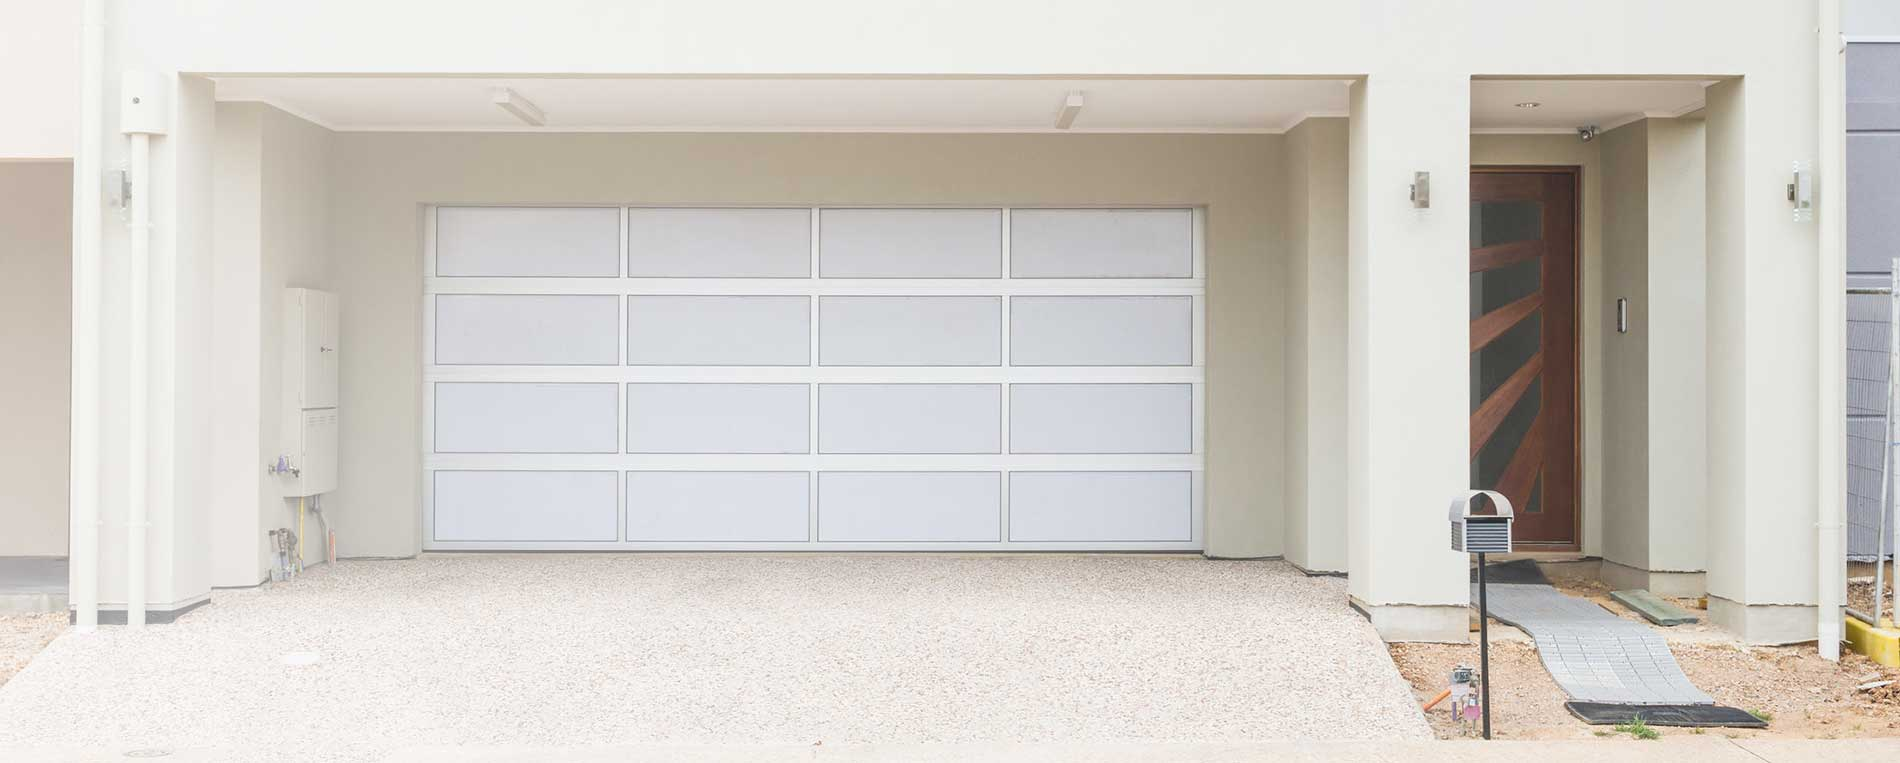 Our Garage Door Services